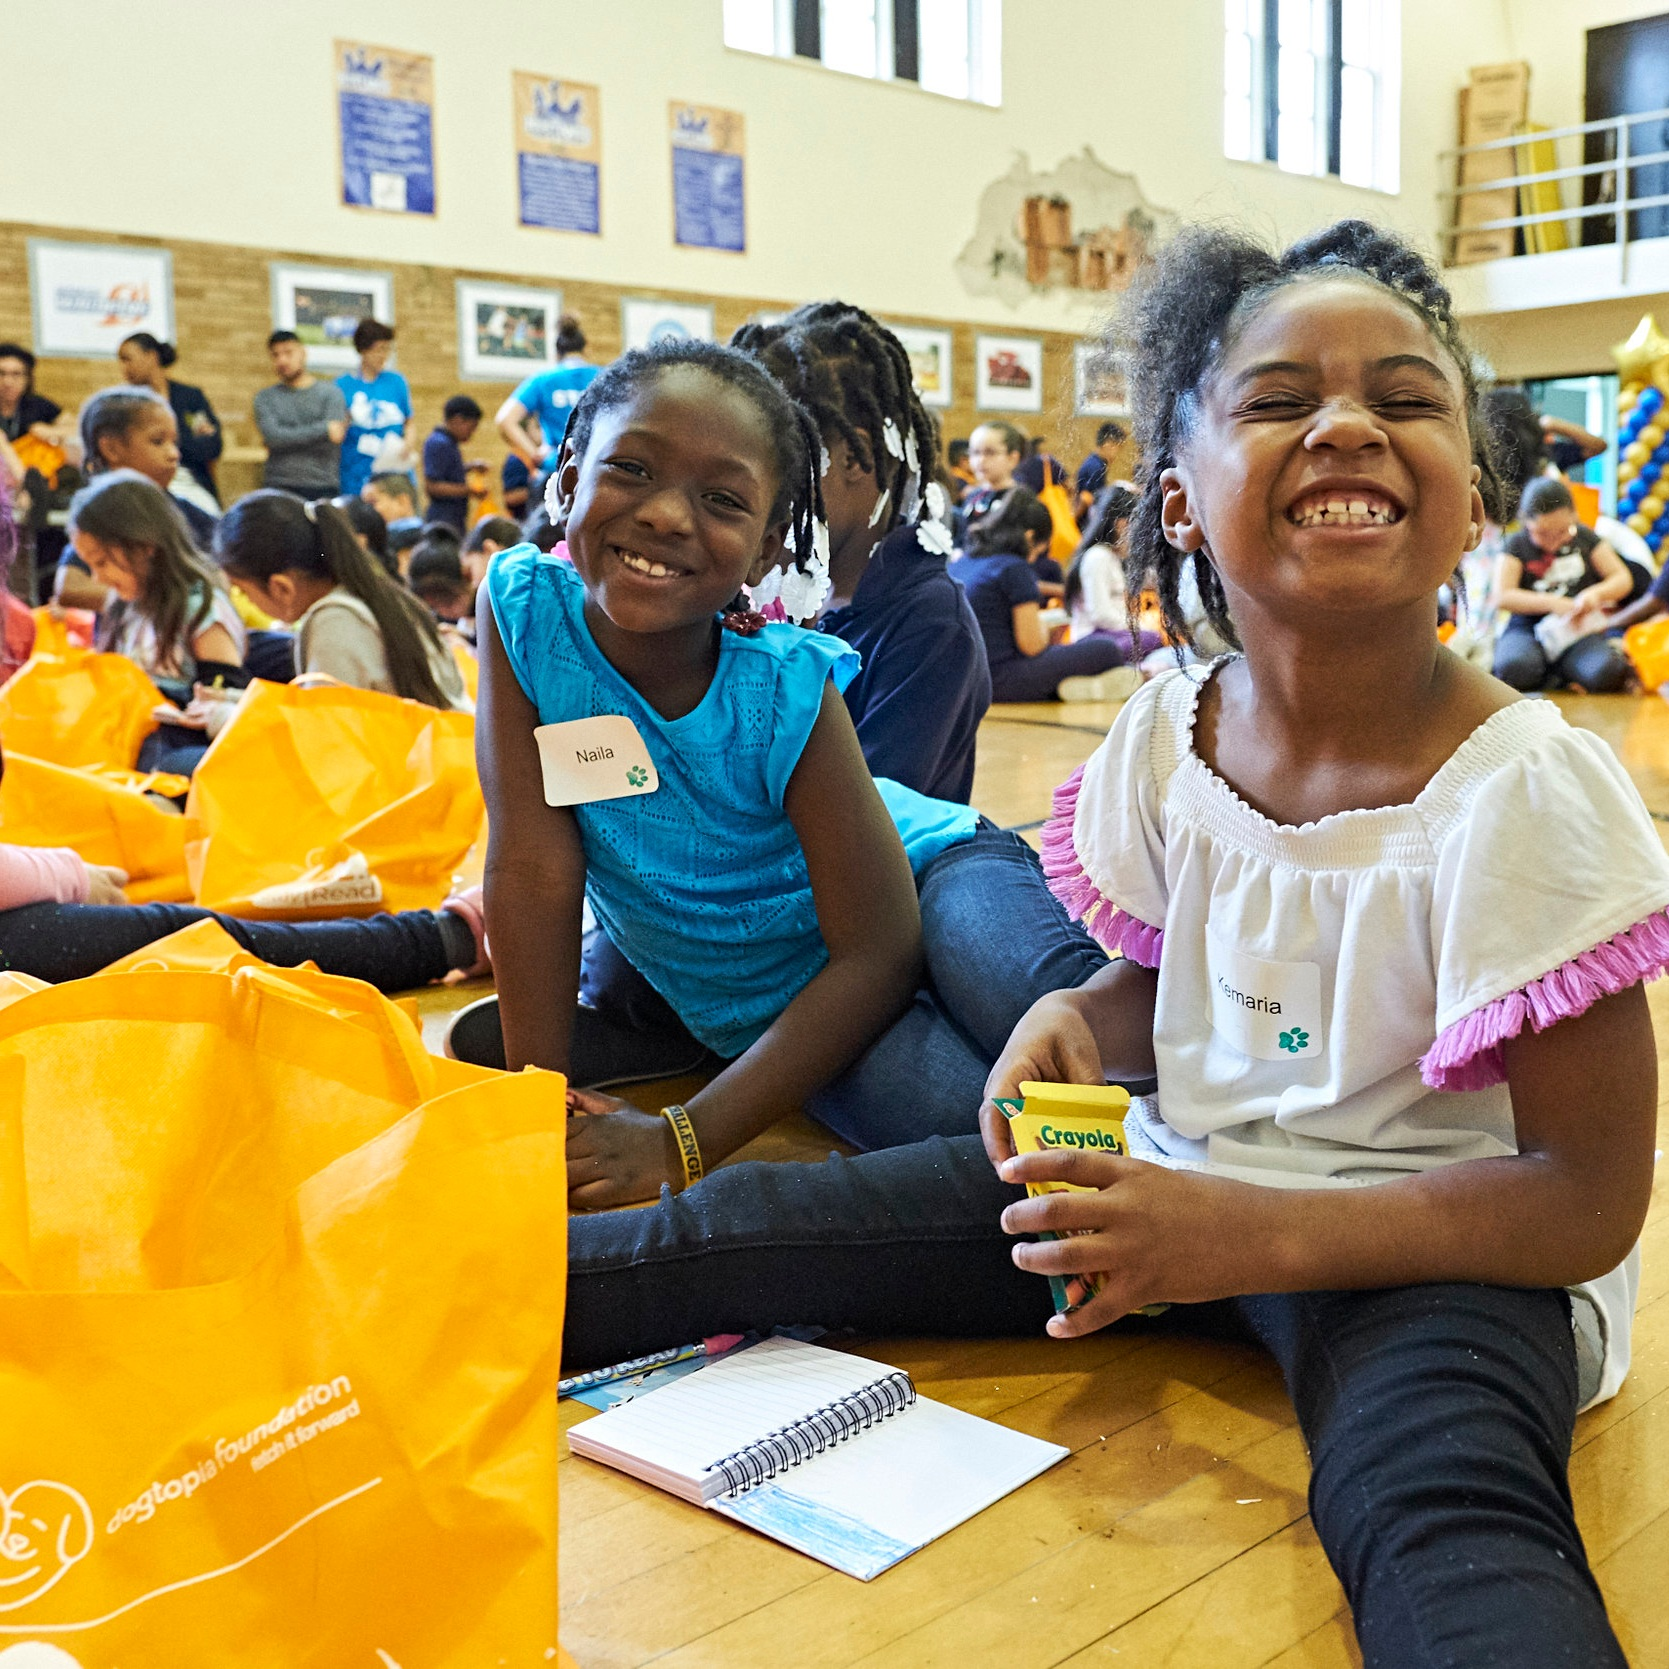 SitStayRead students opening up their Summer Reading Fun Packs at the Keep Reading Celebration at Marquette Elementary (   A. Mandel   )